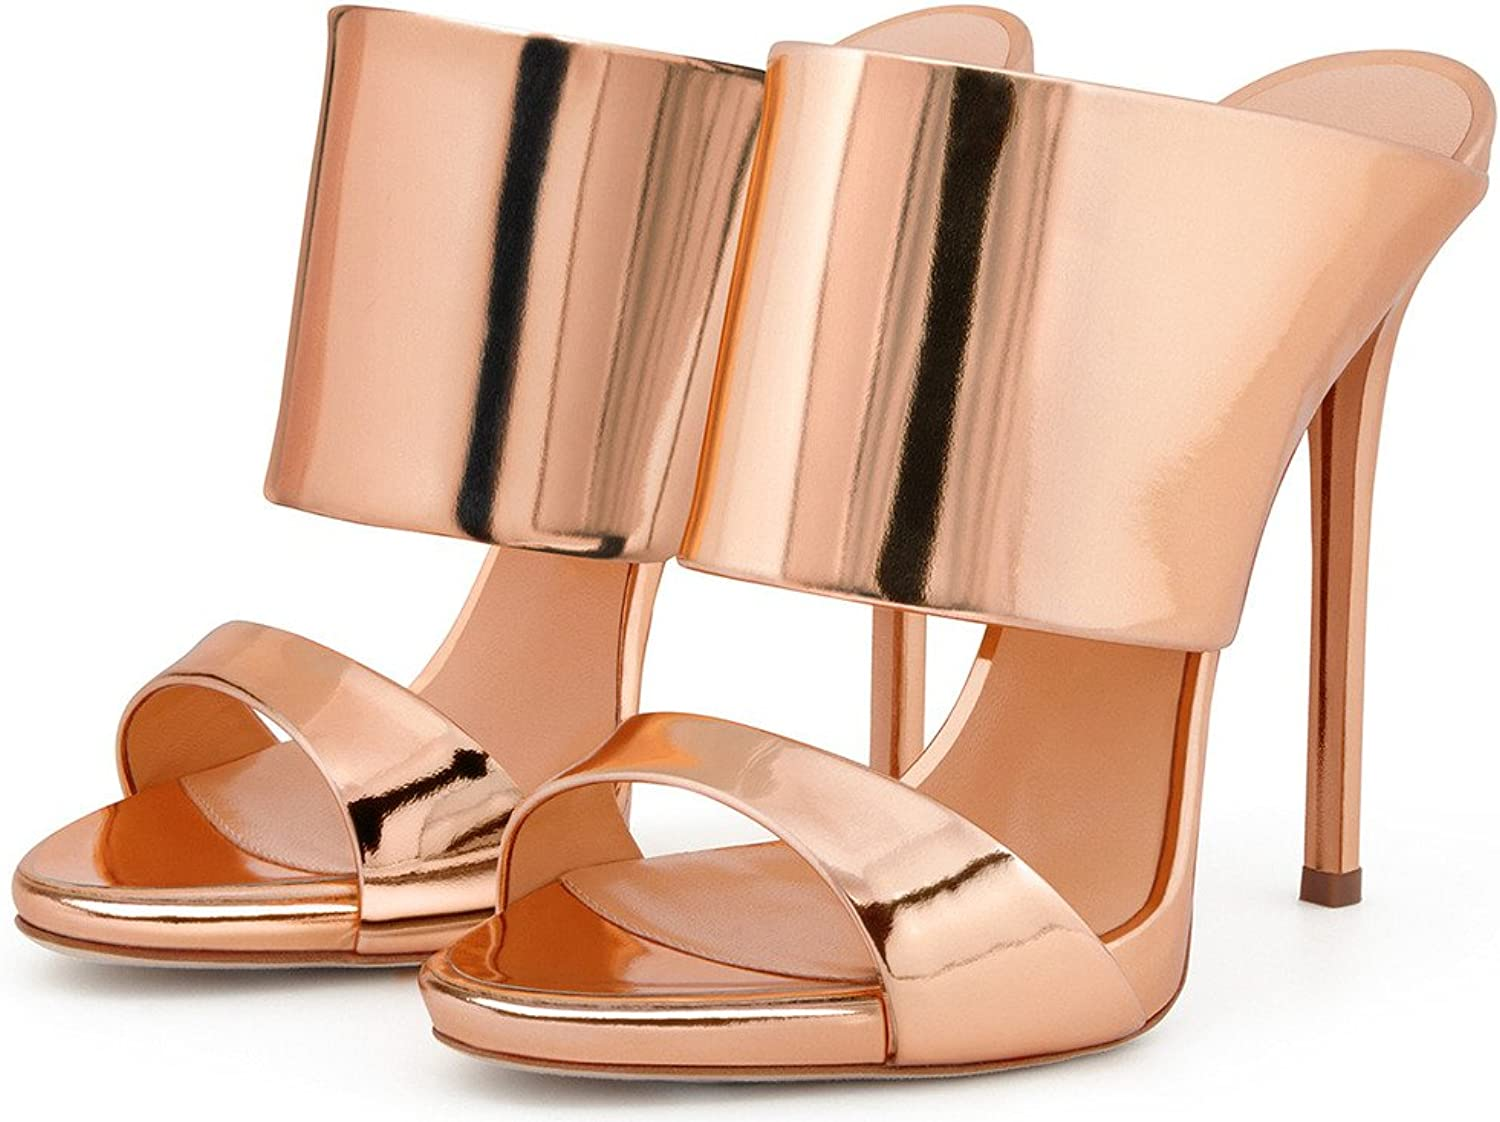 Amy Q Nude Patent Leather Open Toe Back Sling Slip On Stiletto Heel Slides Sandals For Casual shoes